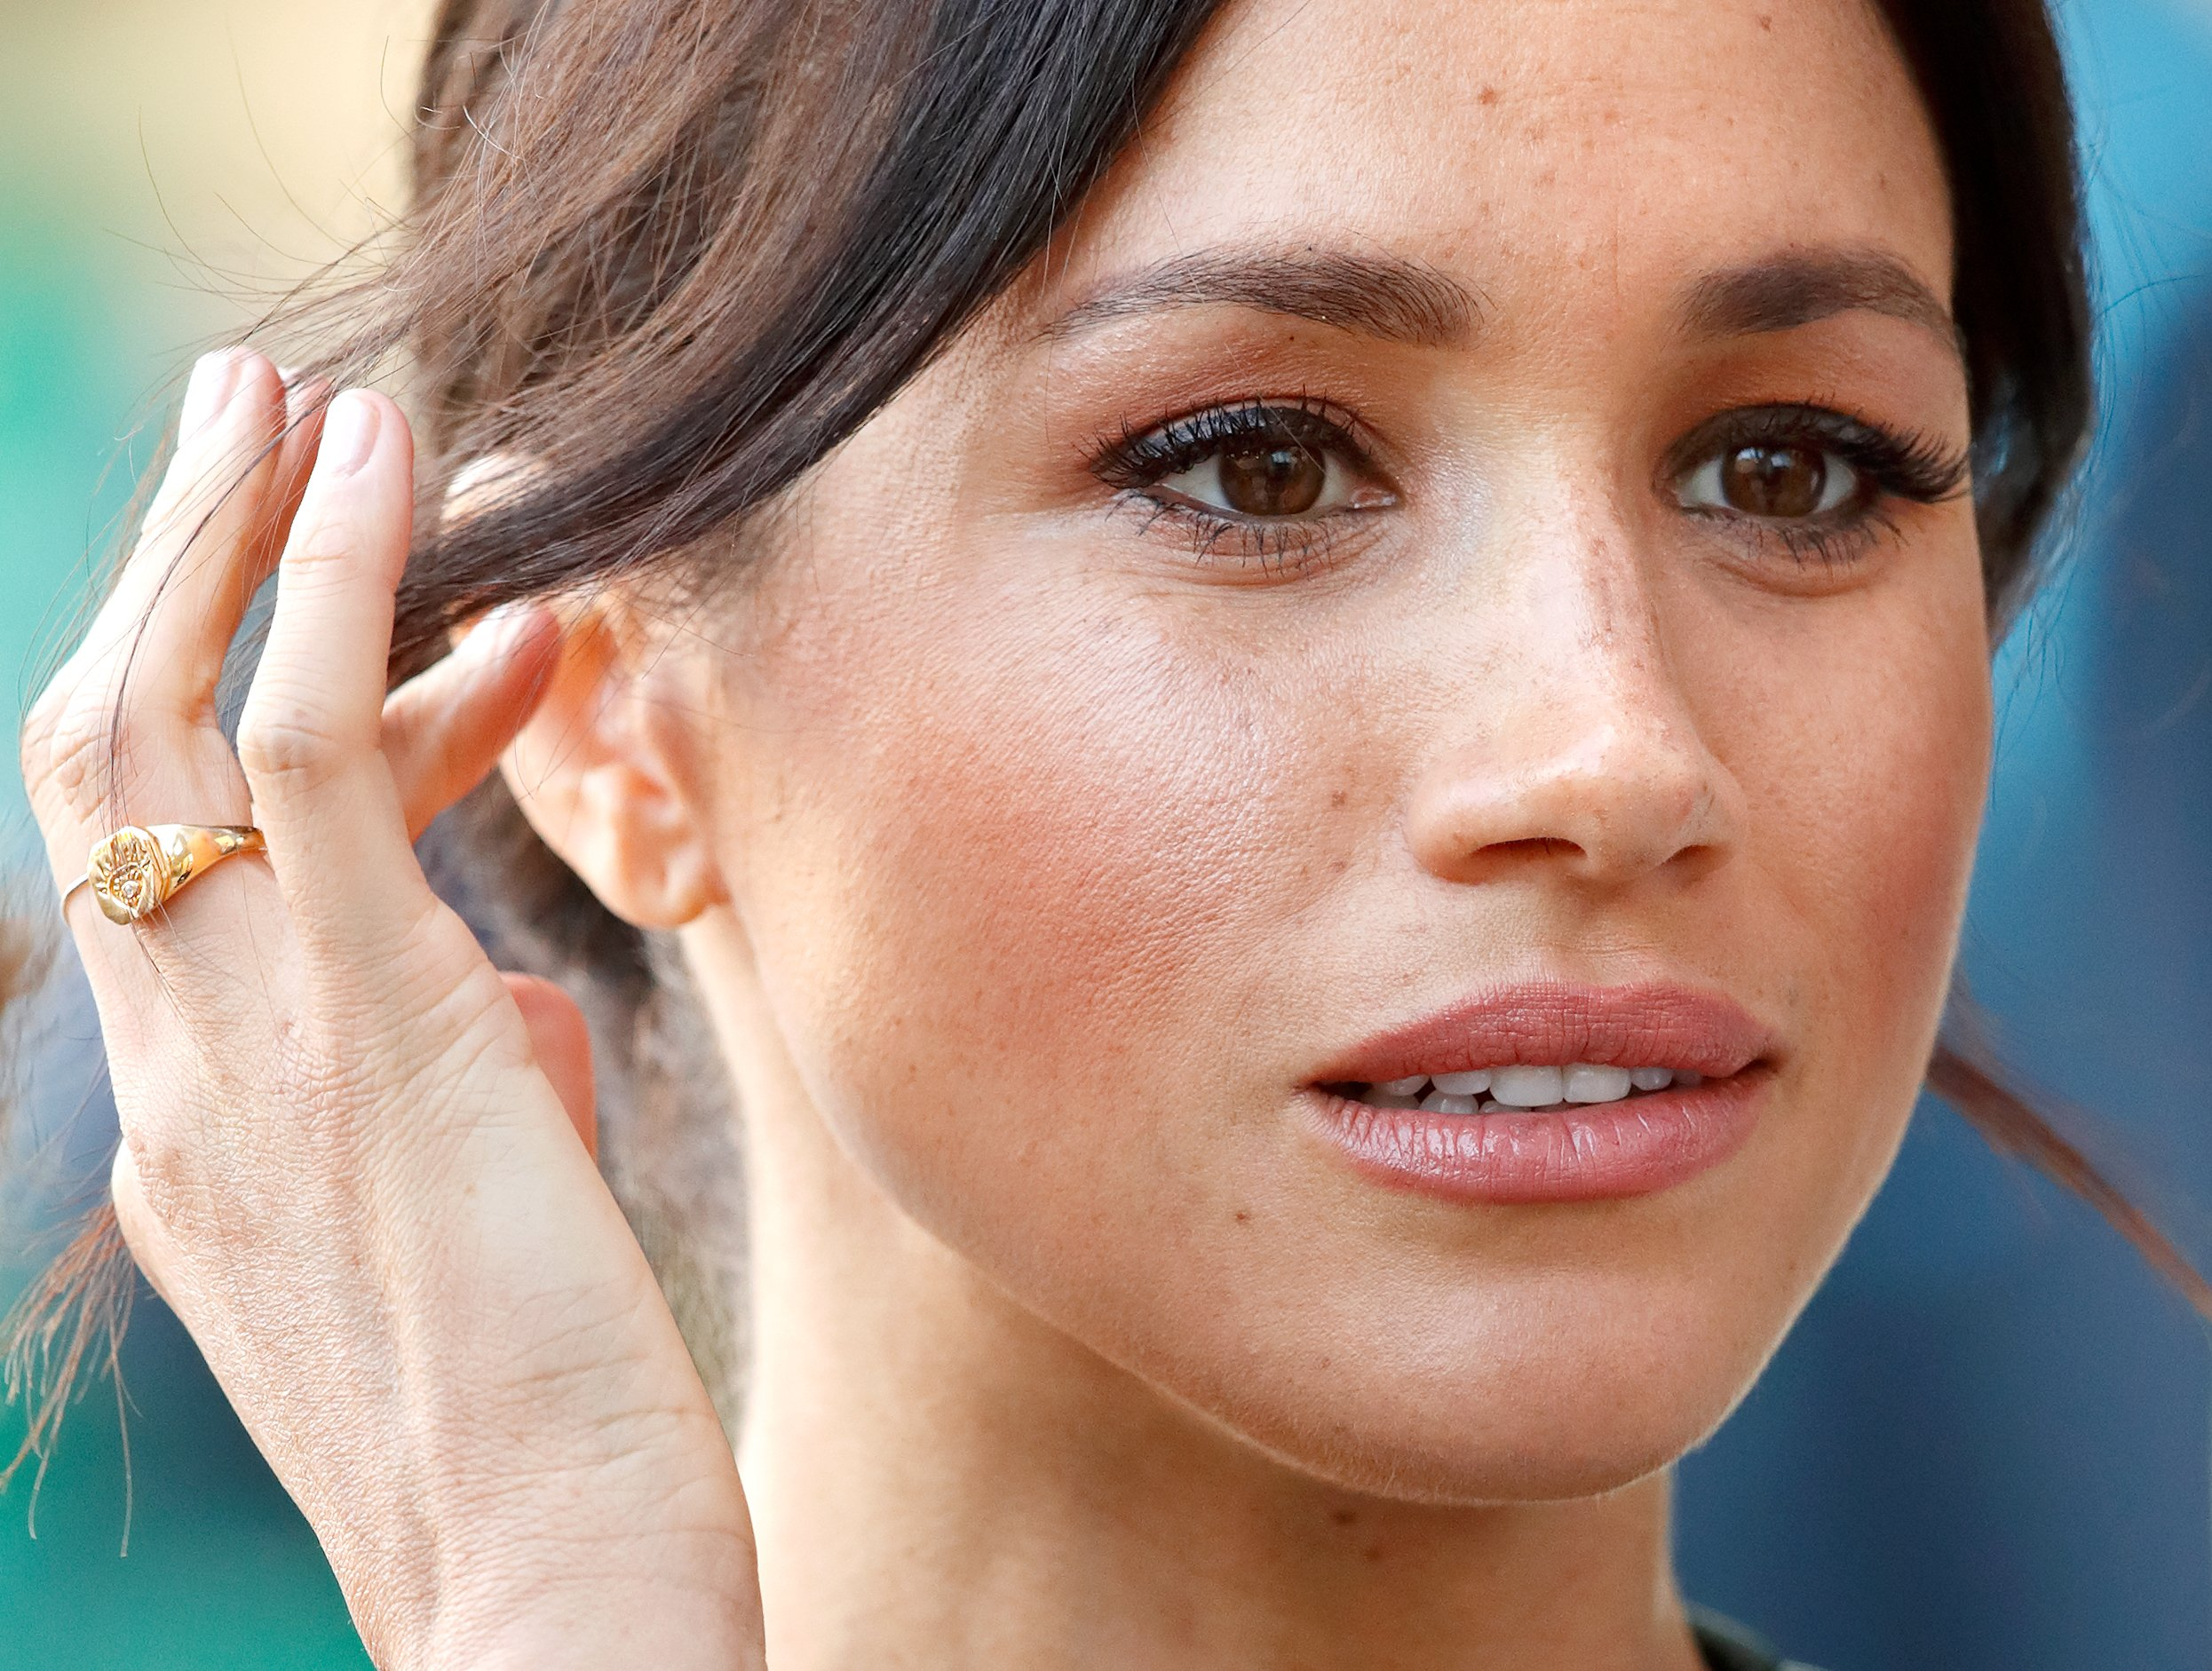 Image Credits: Getty Image | Meghan Markle is photographed by the press.